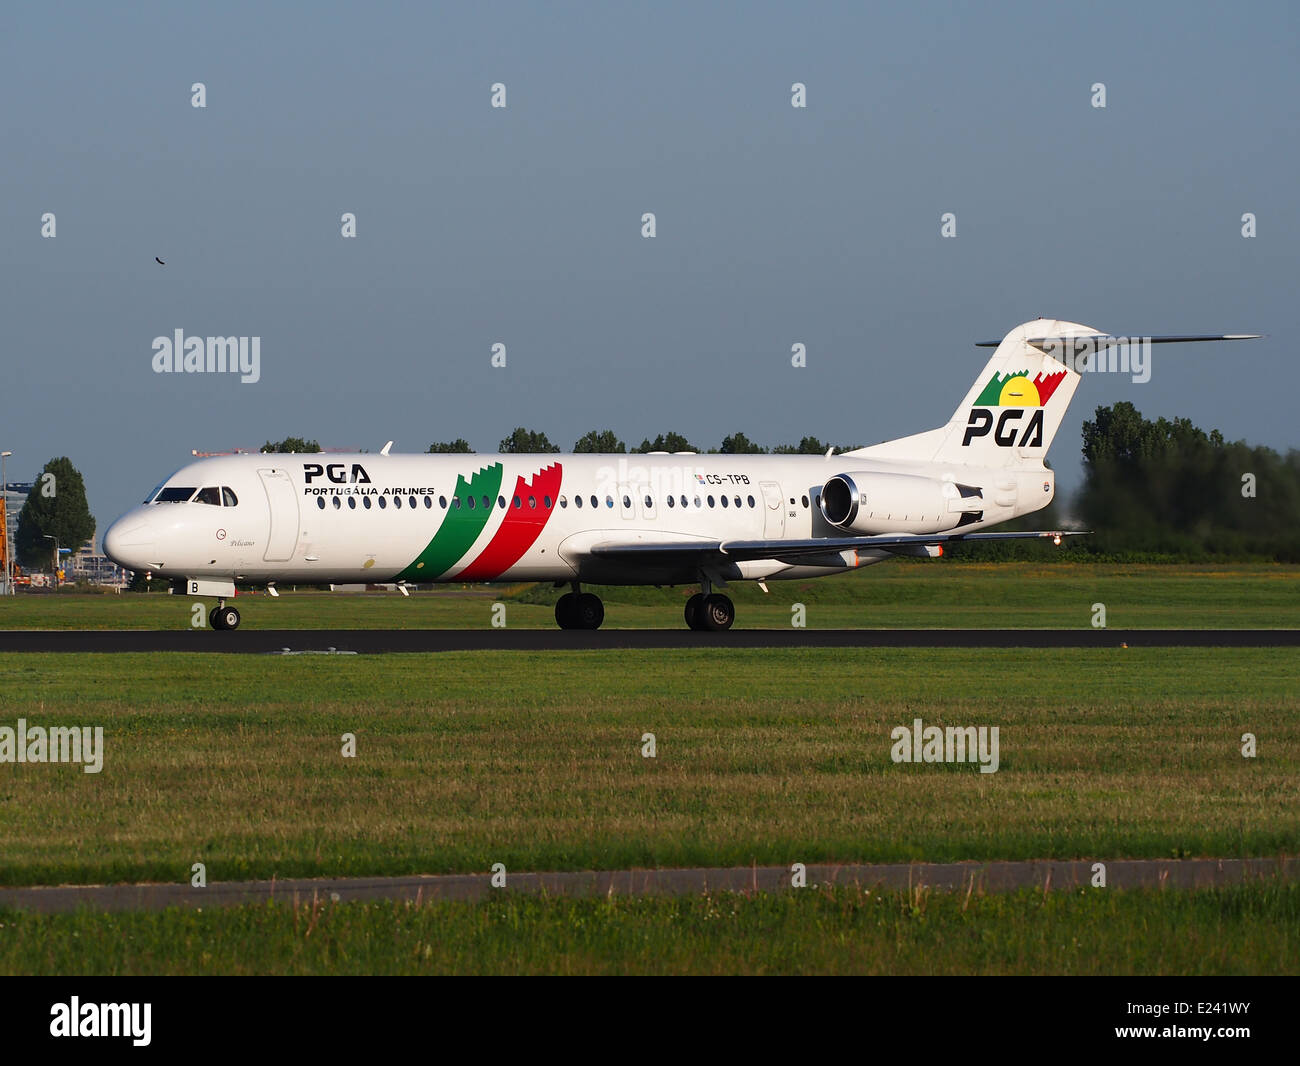 CS-TPB PGA Portugalia Fokker 100 take-off from Schiphol (AMS - EHAM), The Netherlands, 16may2014 - Stock Image